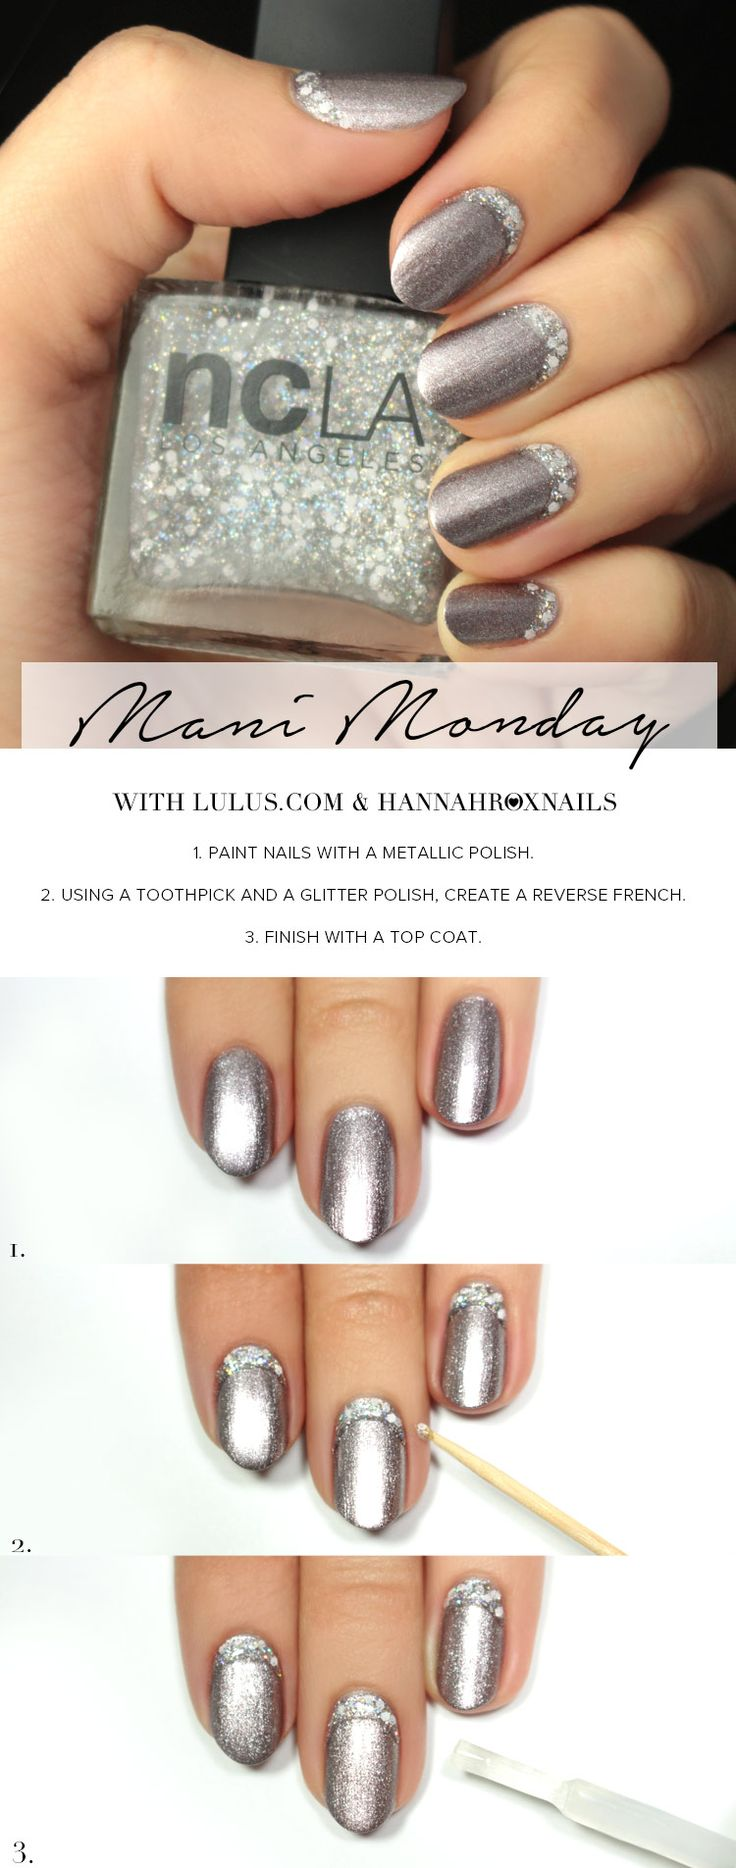 Mani Monday: NCLA Match Made in Cali Sparkle & Shine Nail Tutorial at LuLus.com!